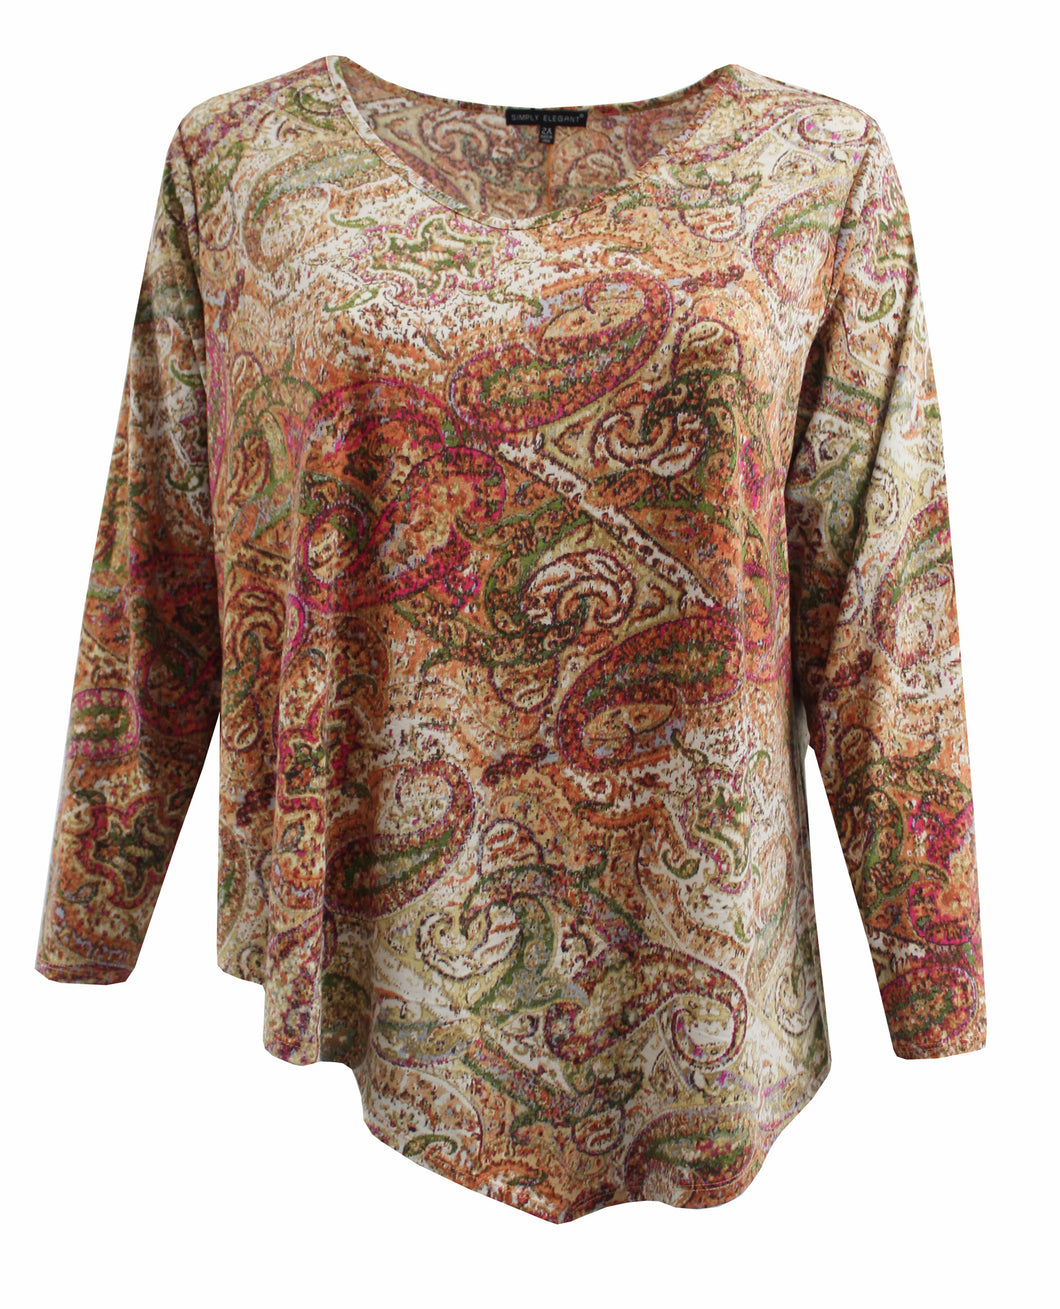 Multi Color Paisley, Knit Sweater Top